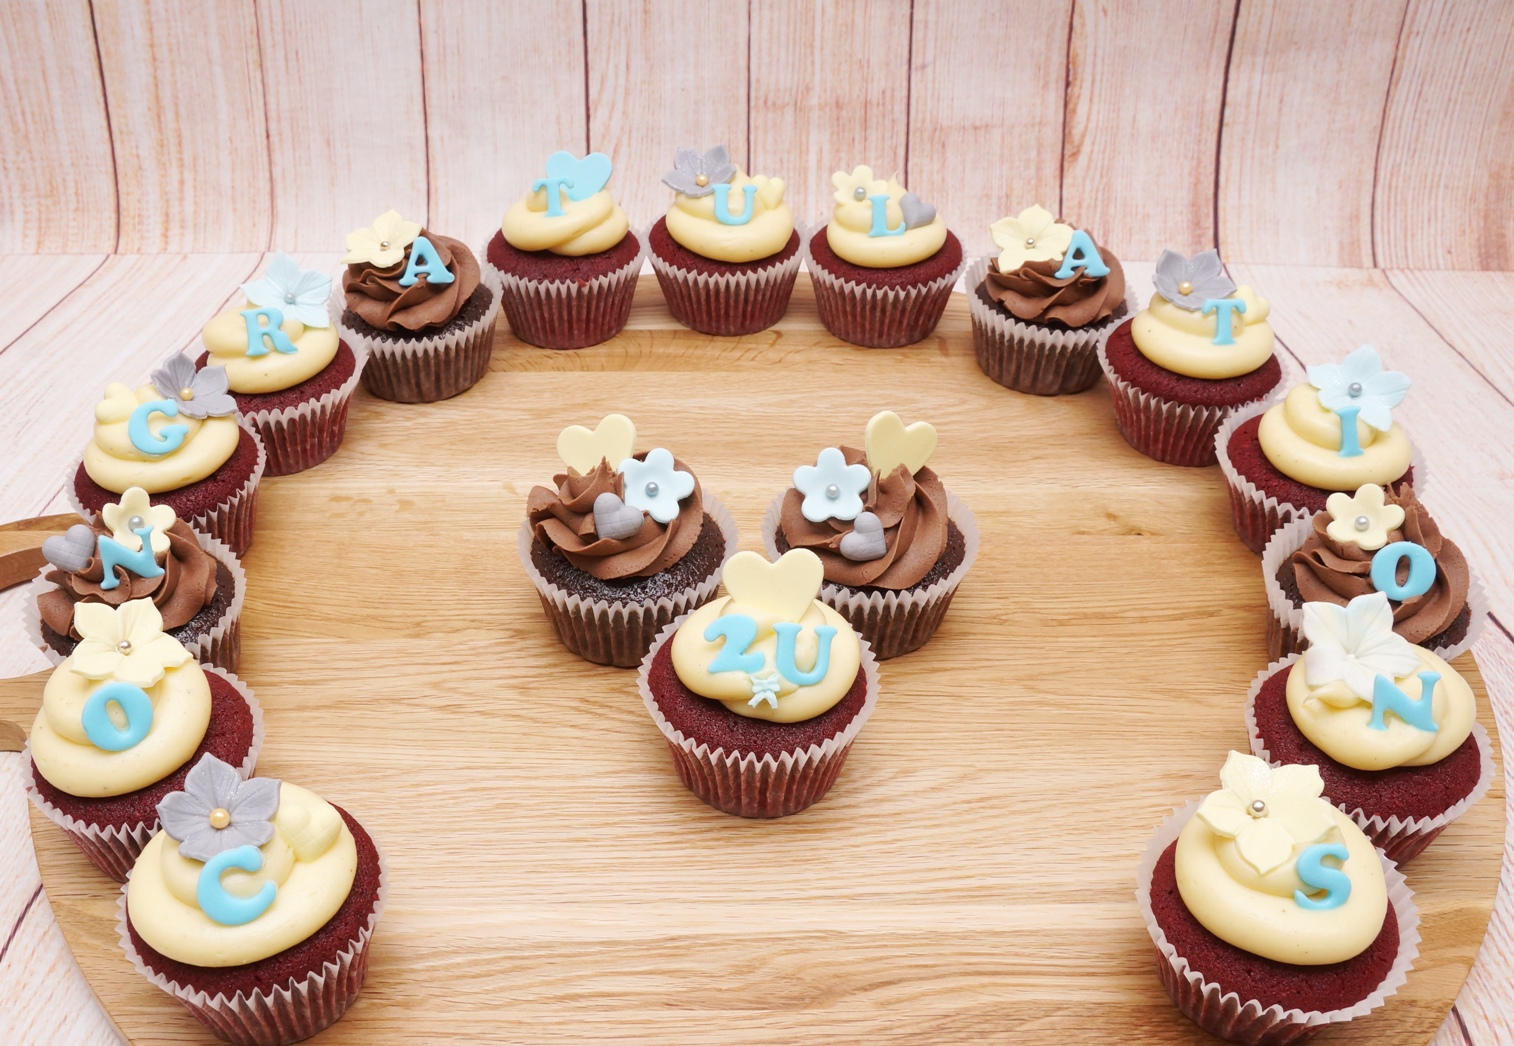 Blue, yellow & grey cupcakes